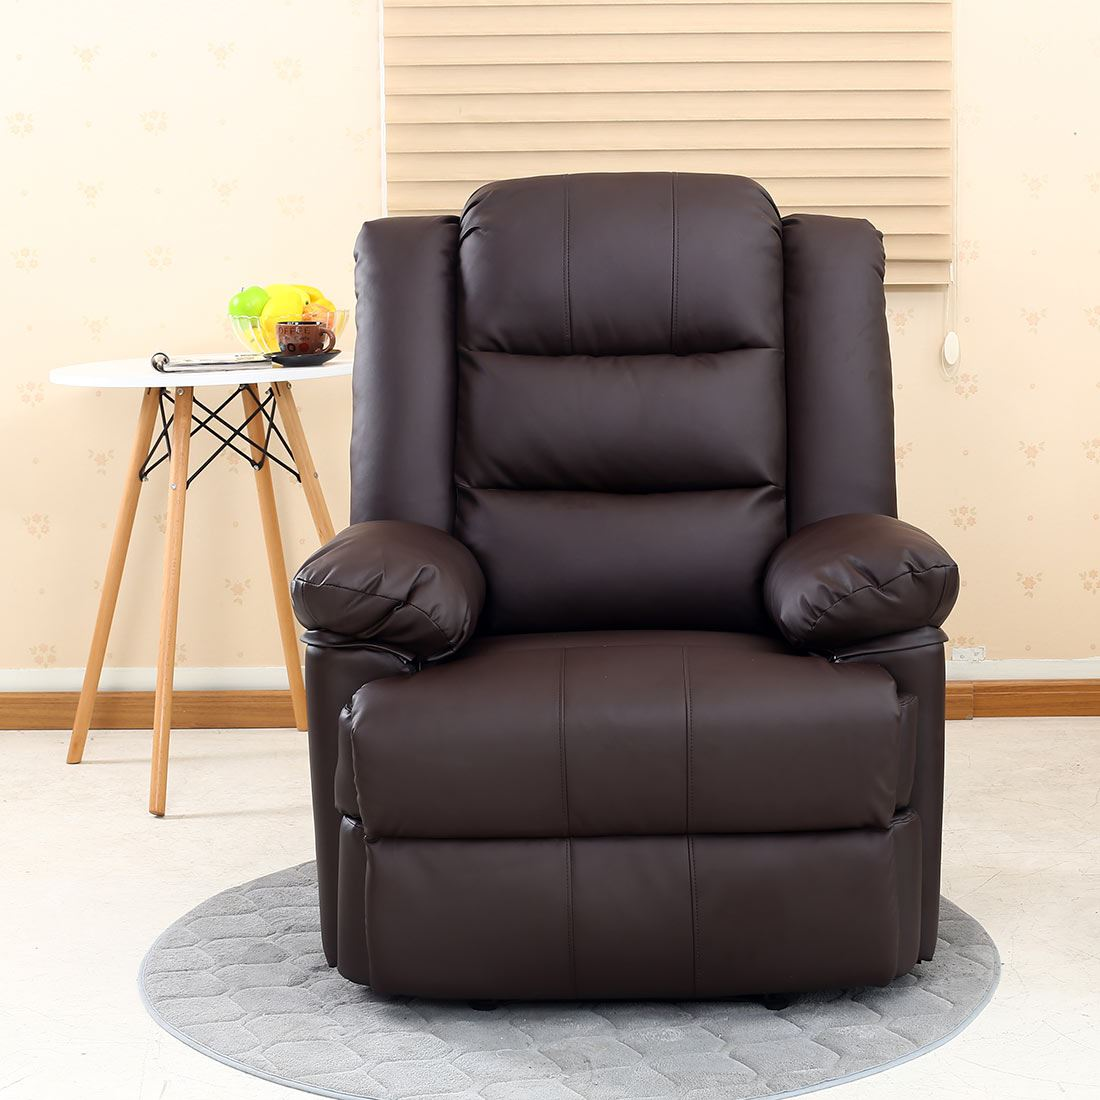 recliner gaming chair makeup vanity with back loxley leather armchair sofa home lounge